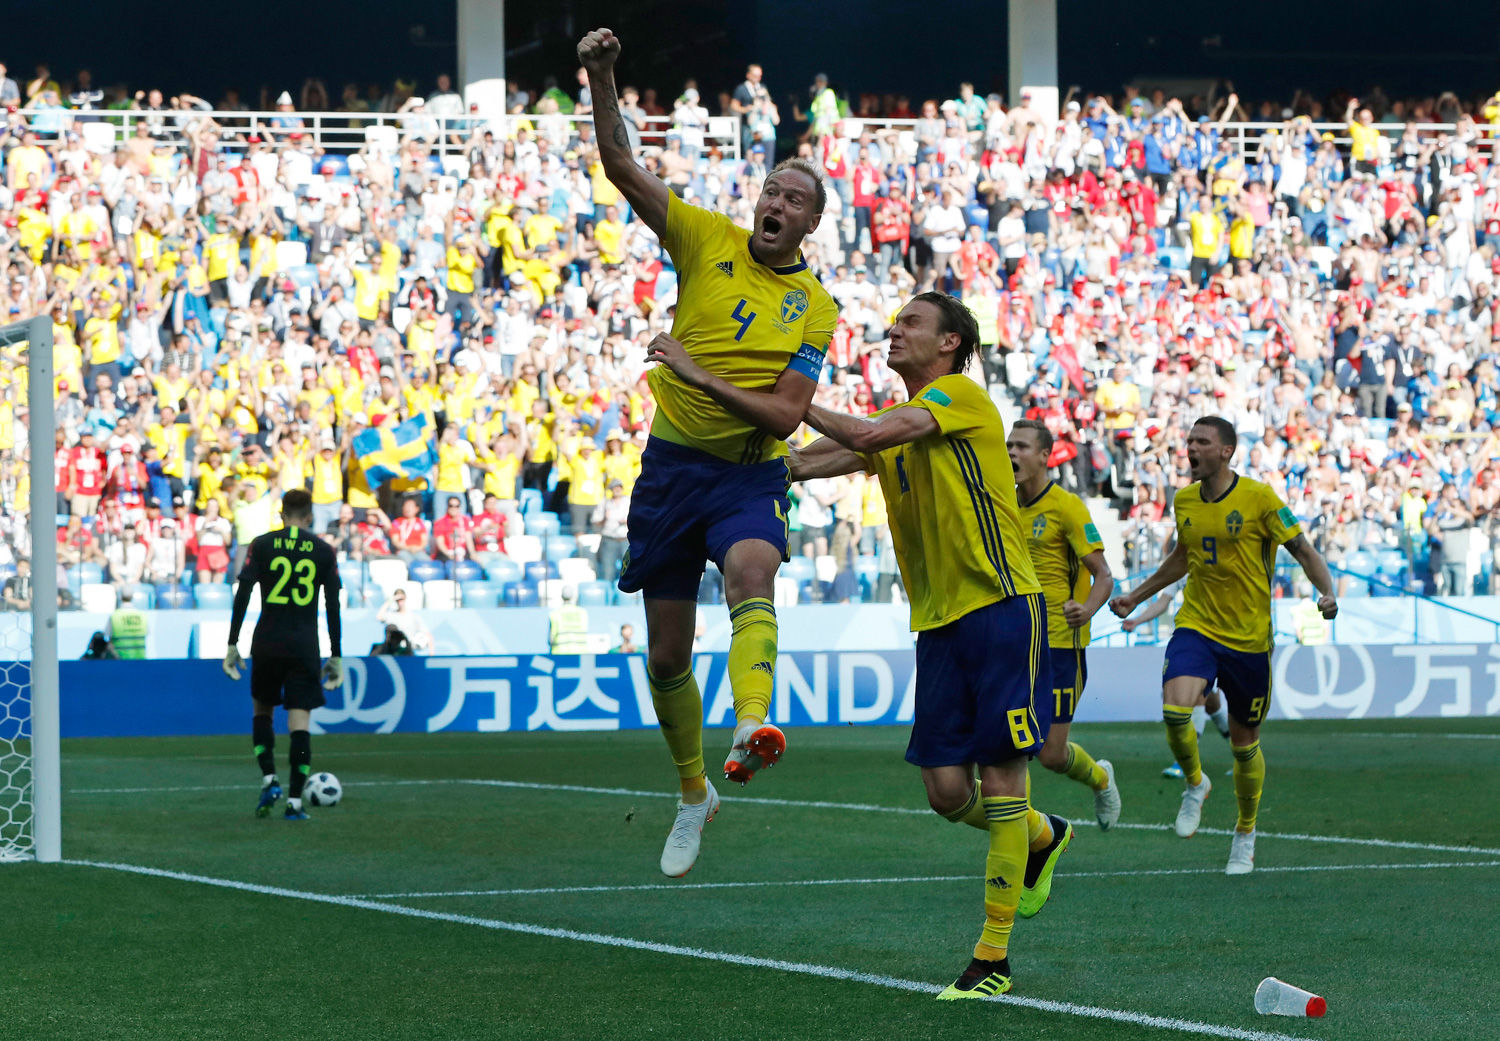 "<div class=""meta image-caption""><div class=""origin-logo origin-image none""><span>none</span></div><span class=""caption-text"">Sweden's Andreas Granqvist, centre, celebrates after scoring the opening goal during the group F match between Sweden and South Korea at the 2018 soccer World Cup (Pavel Golovkin/AP)</span></div>"